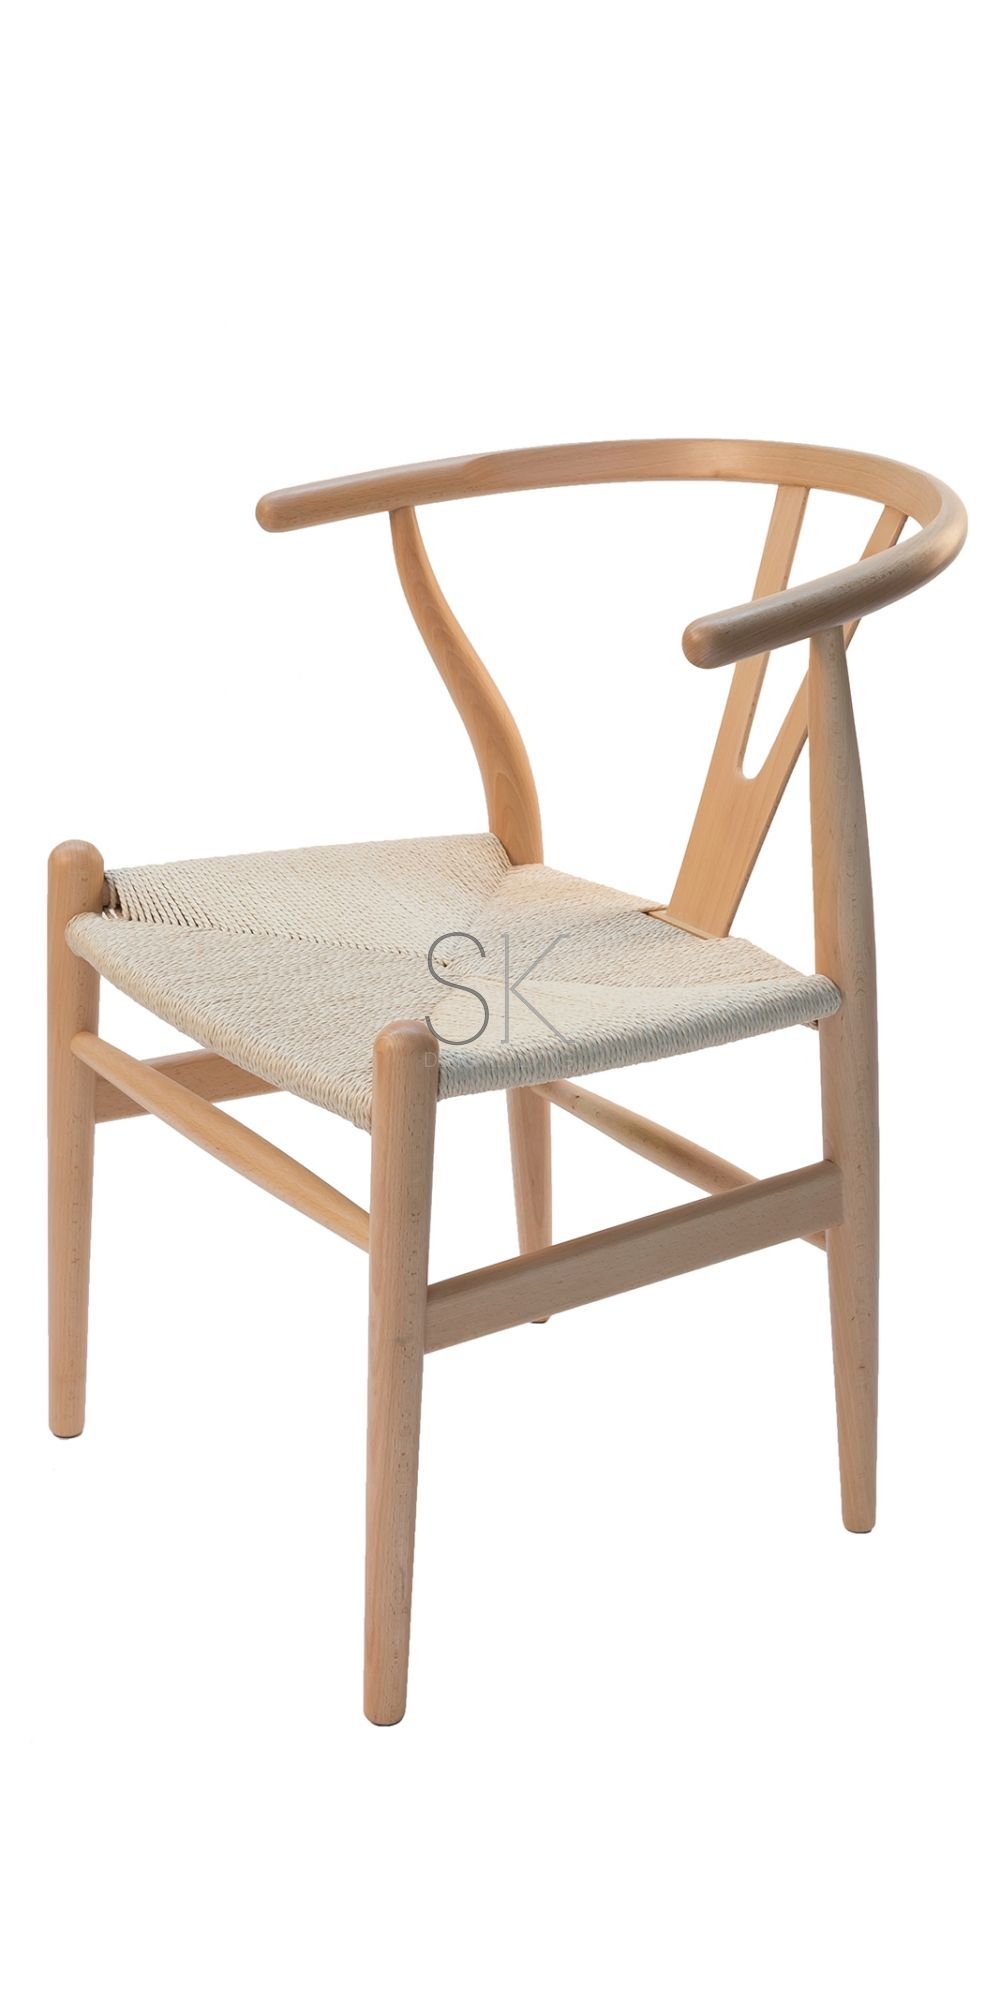 Replica Hans Wegner Wishbone Chair - Natural Frame u0026 Natural Rattan  sc 1 st  Pinterest & Replica Hans Wegner Wishbone Chair - Natural Frame u0026 Natural Rattan ...